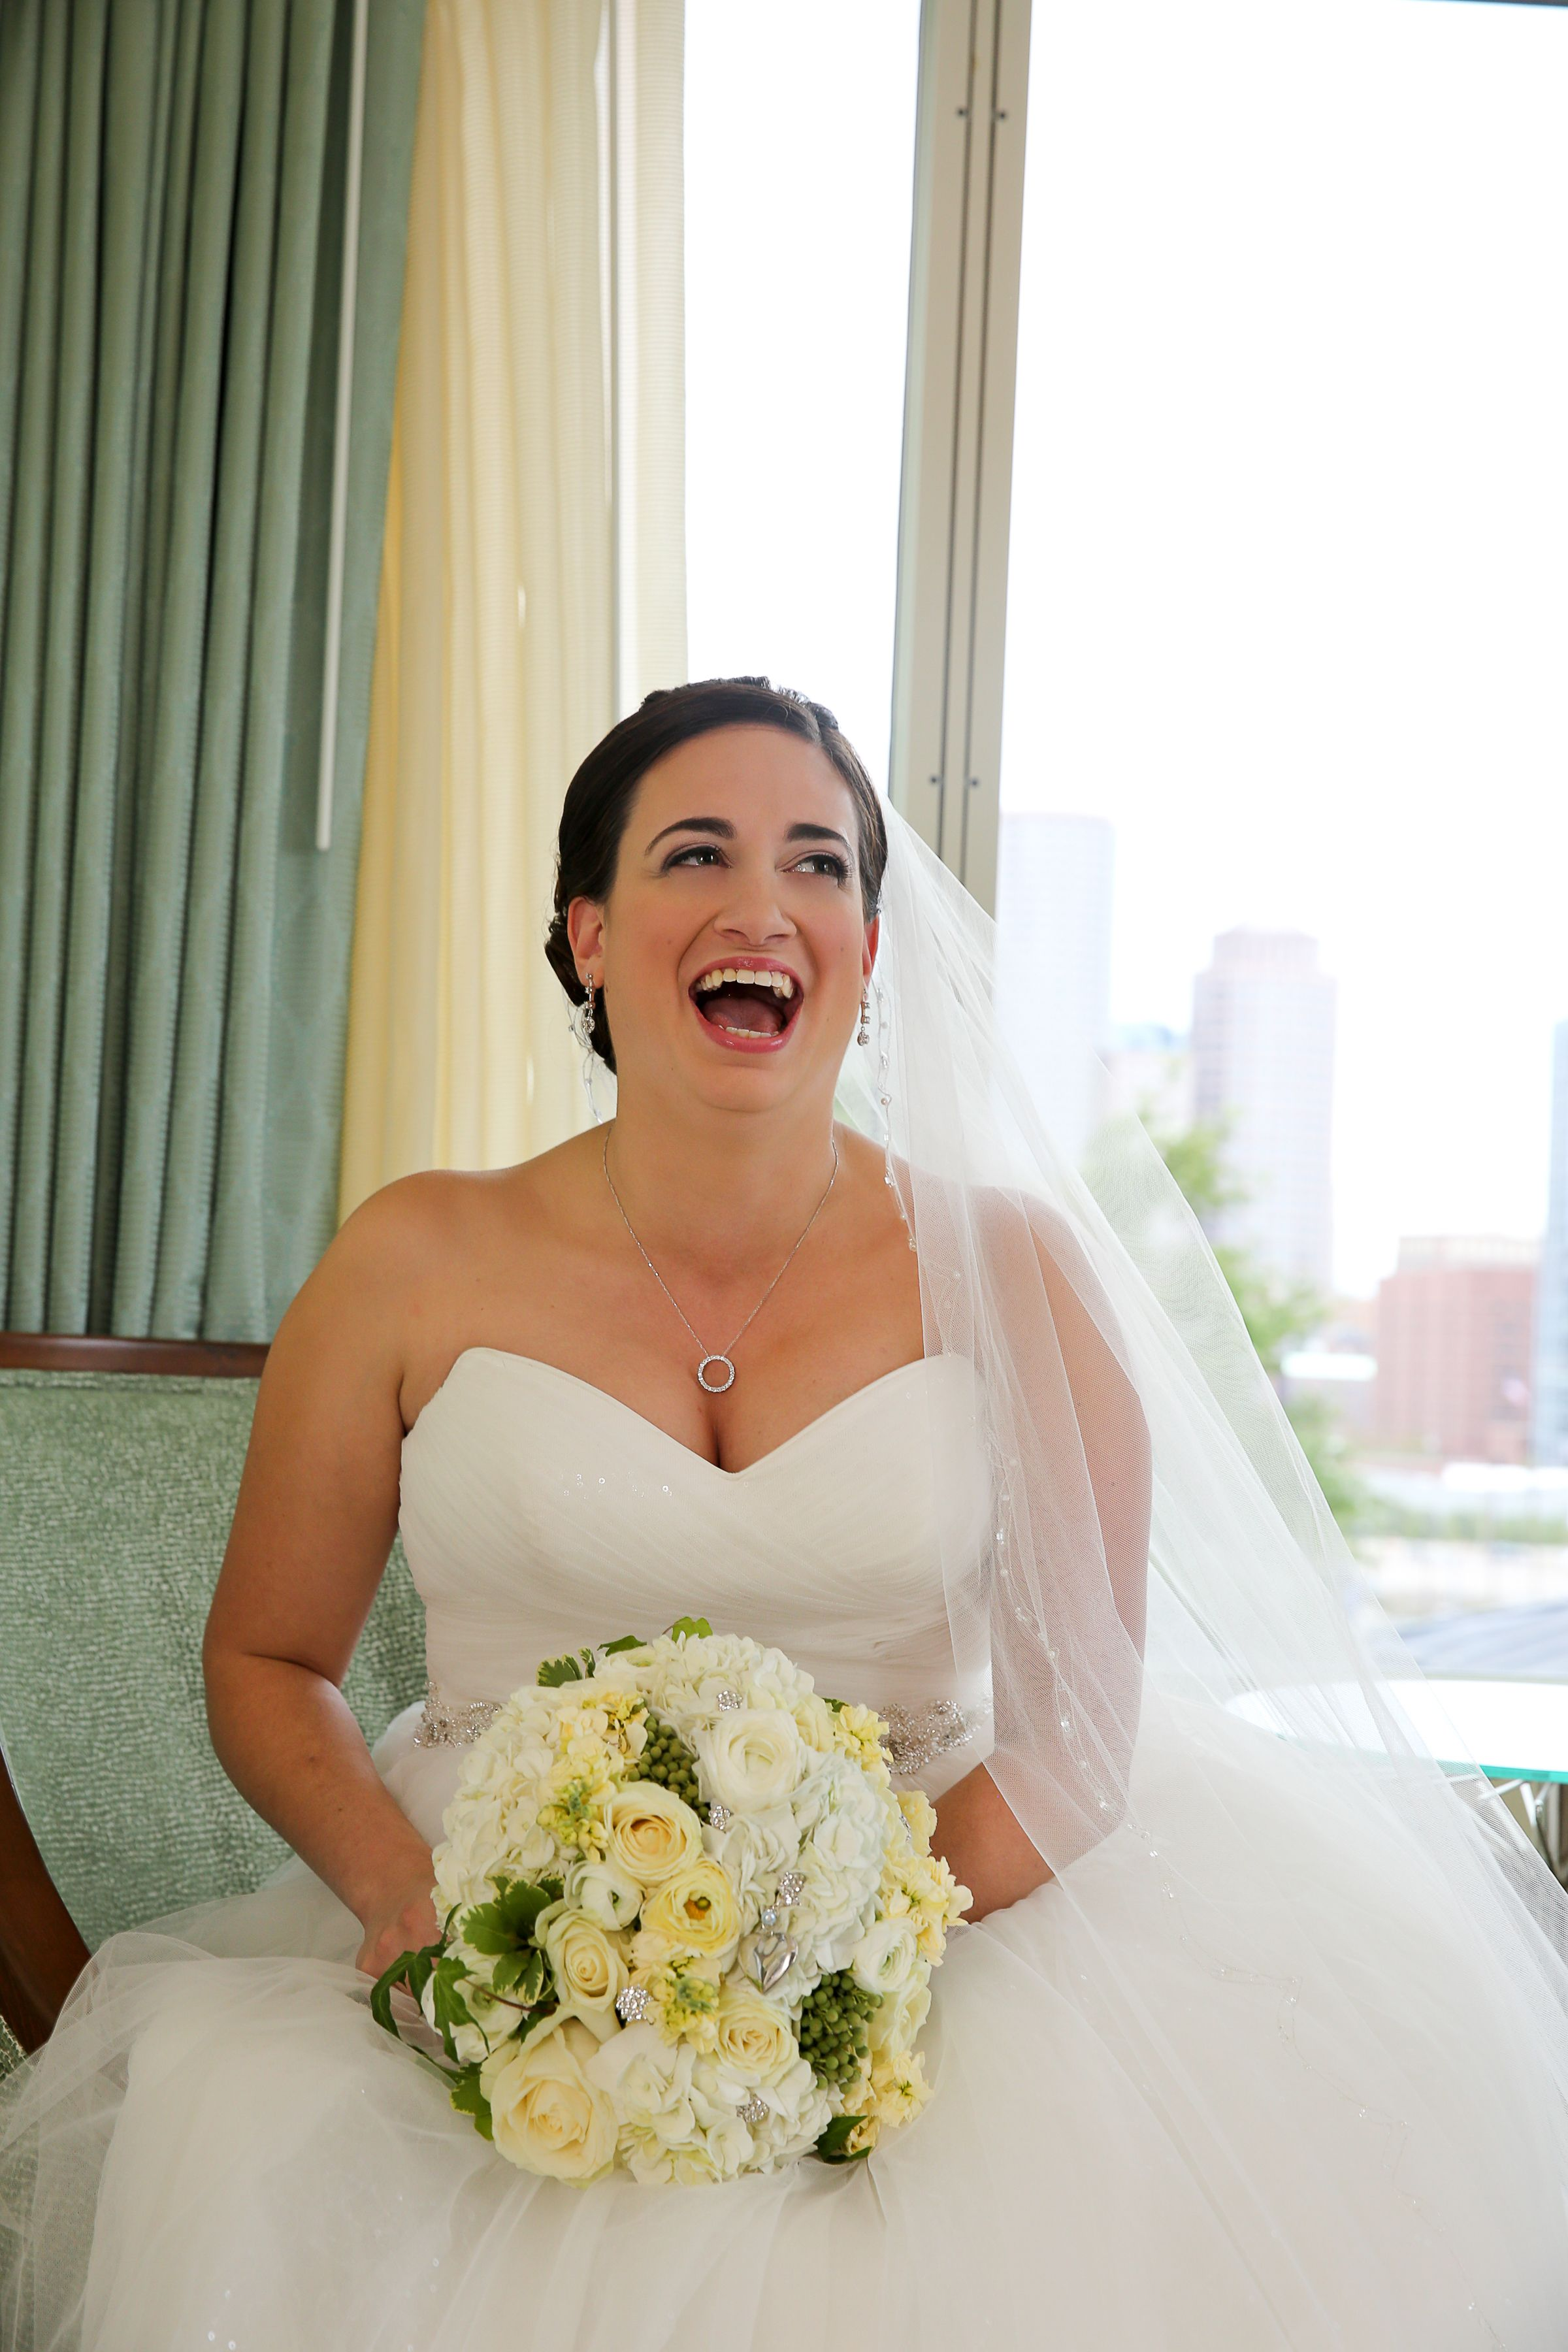 Morning wedding dresses  Laughing bride the morning of her wedding For more wedding